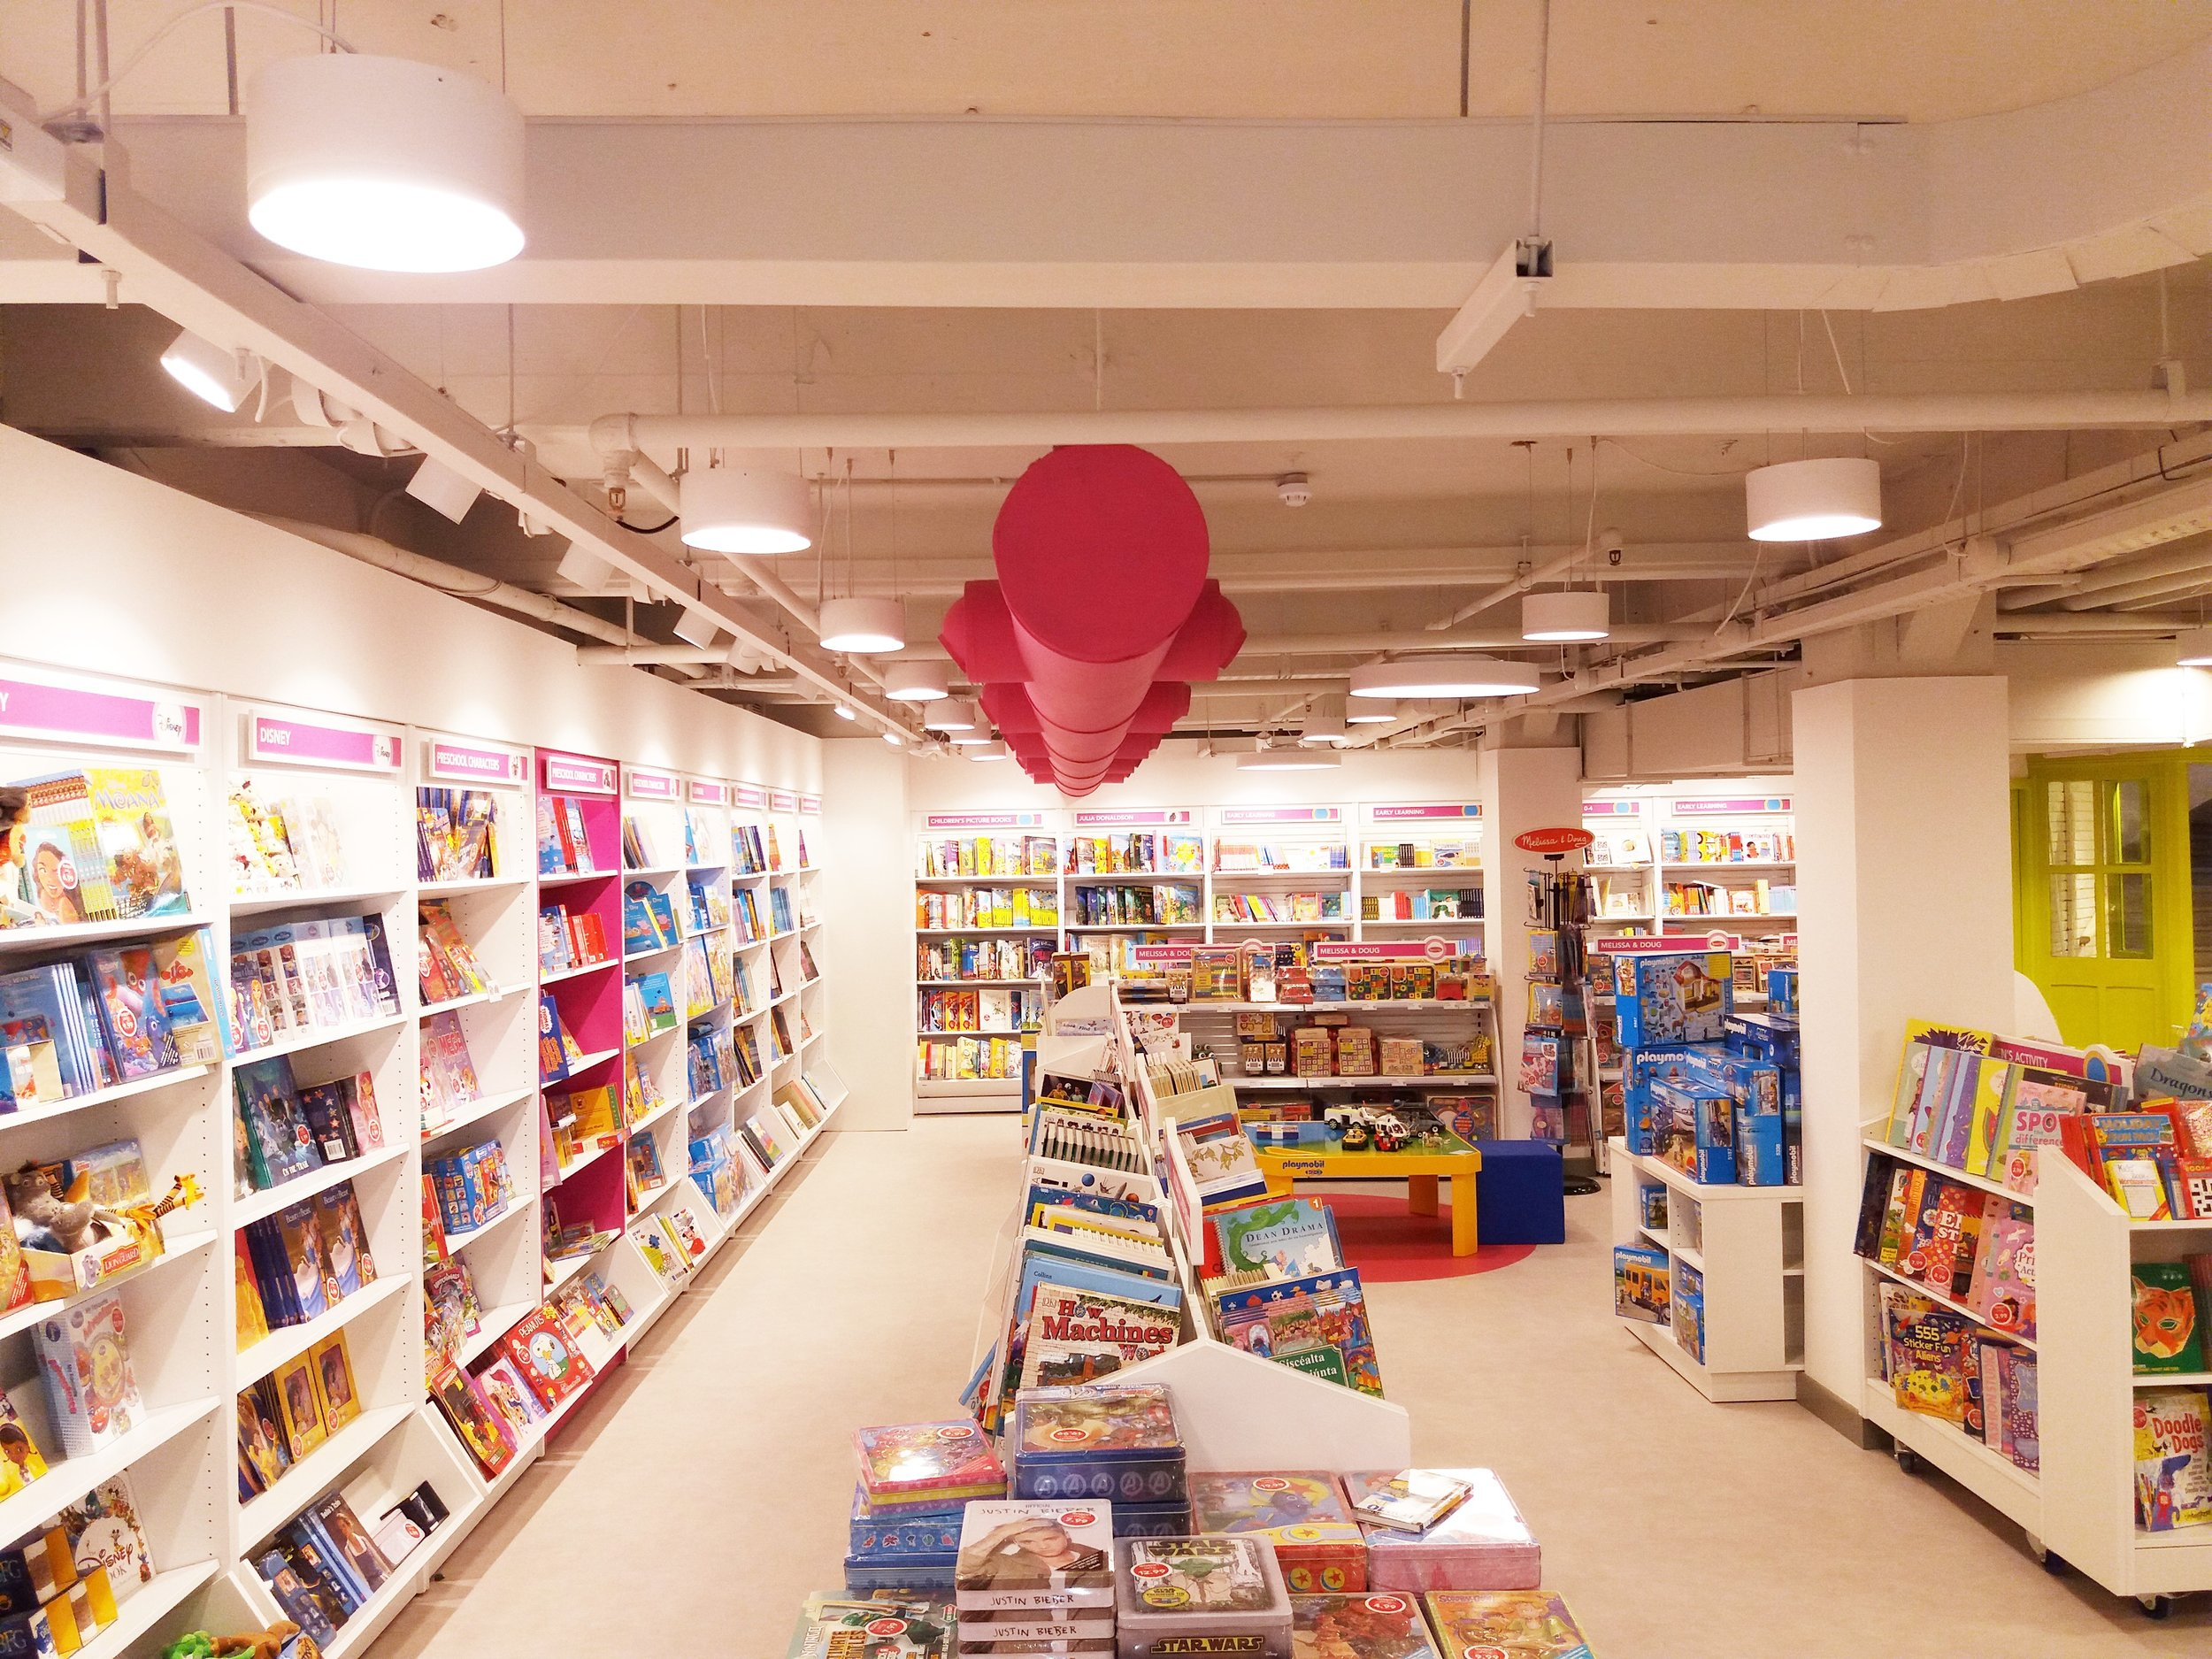 Easons-basement-refurbishment.jpg